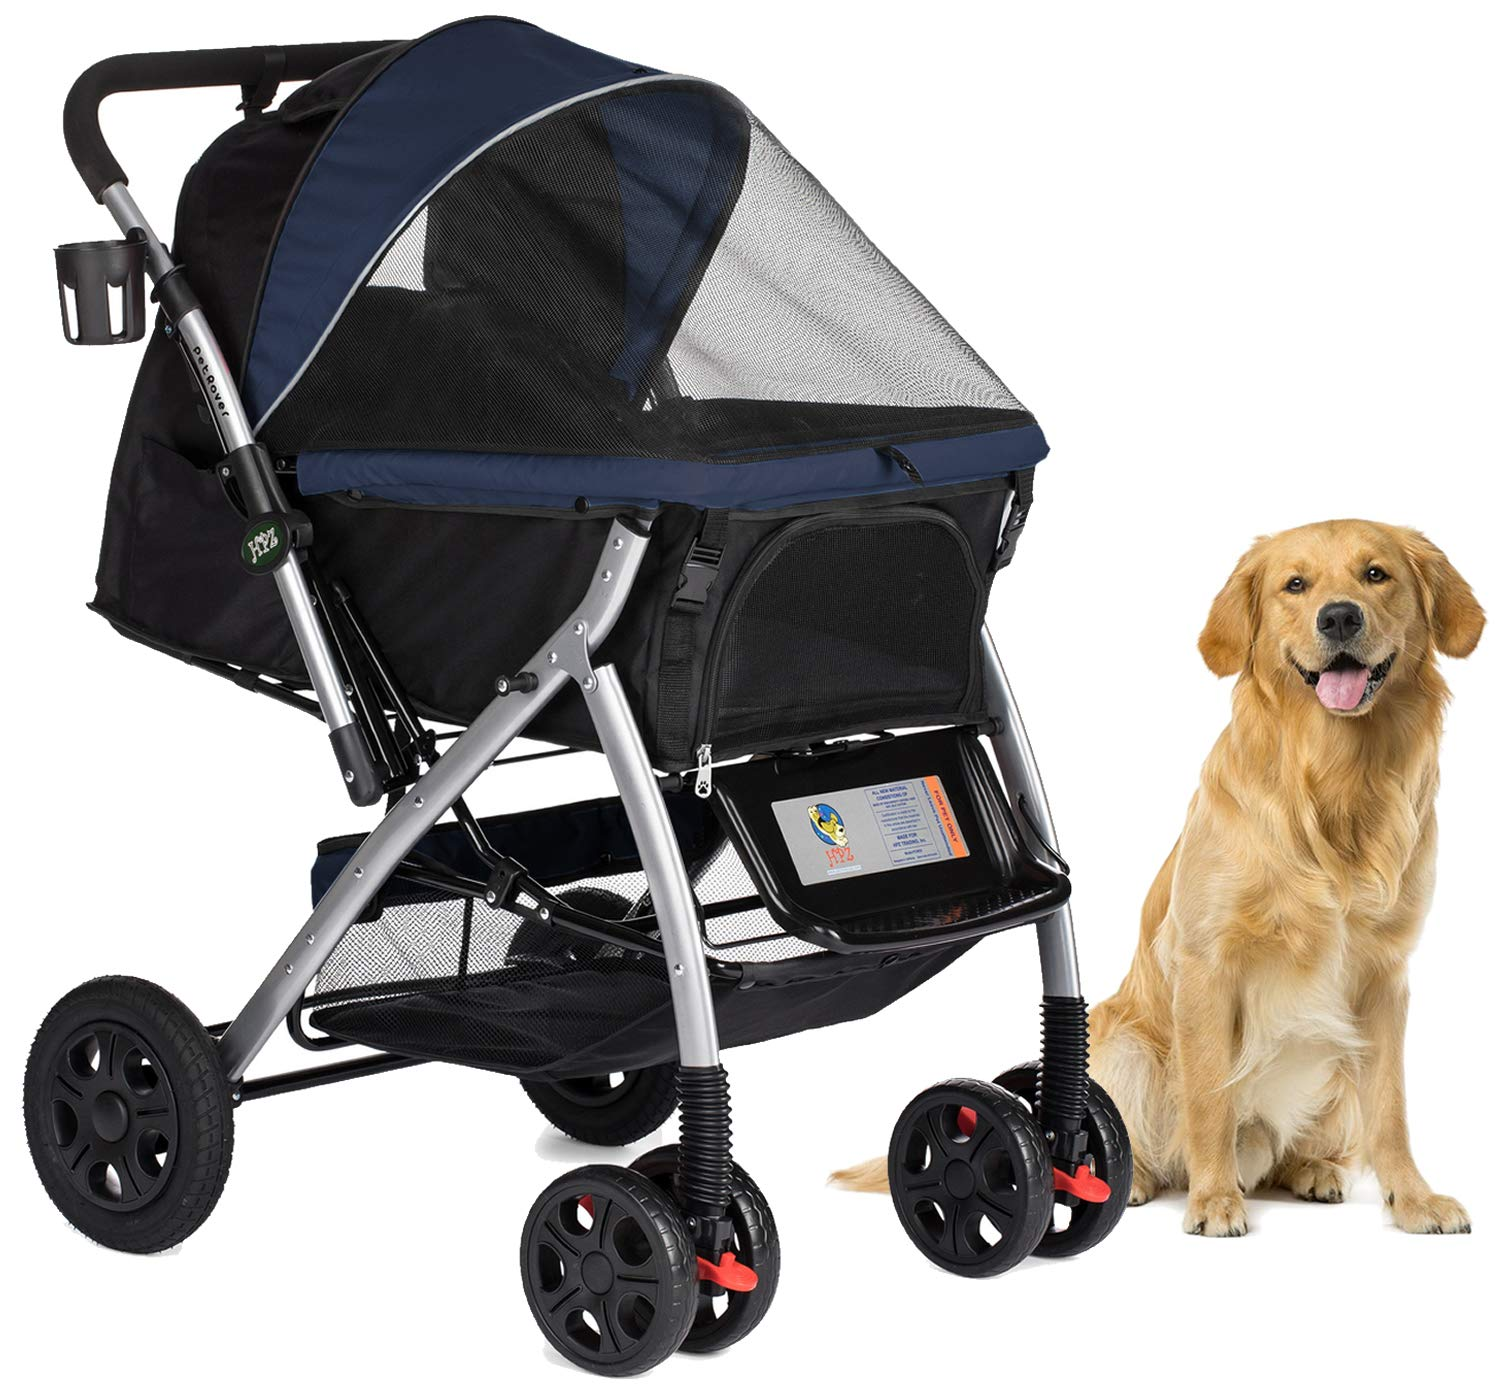 HPZ Pet Rover Premium Heavy Duty Dog/Cat/Pet Stroller Travel Carriage With Convertible Compartment/Zipperless Entry/Reversible Handle/Pump-Free Rubber Tires for Small, Medium, Large Pets-Midnight Blue by HPZ